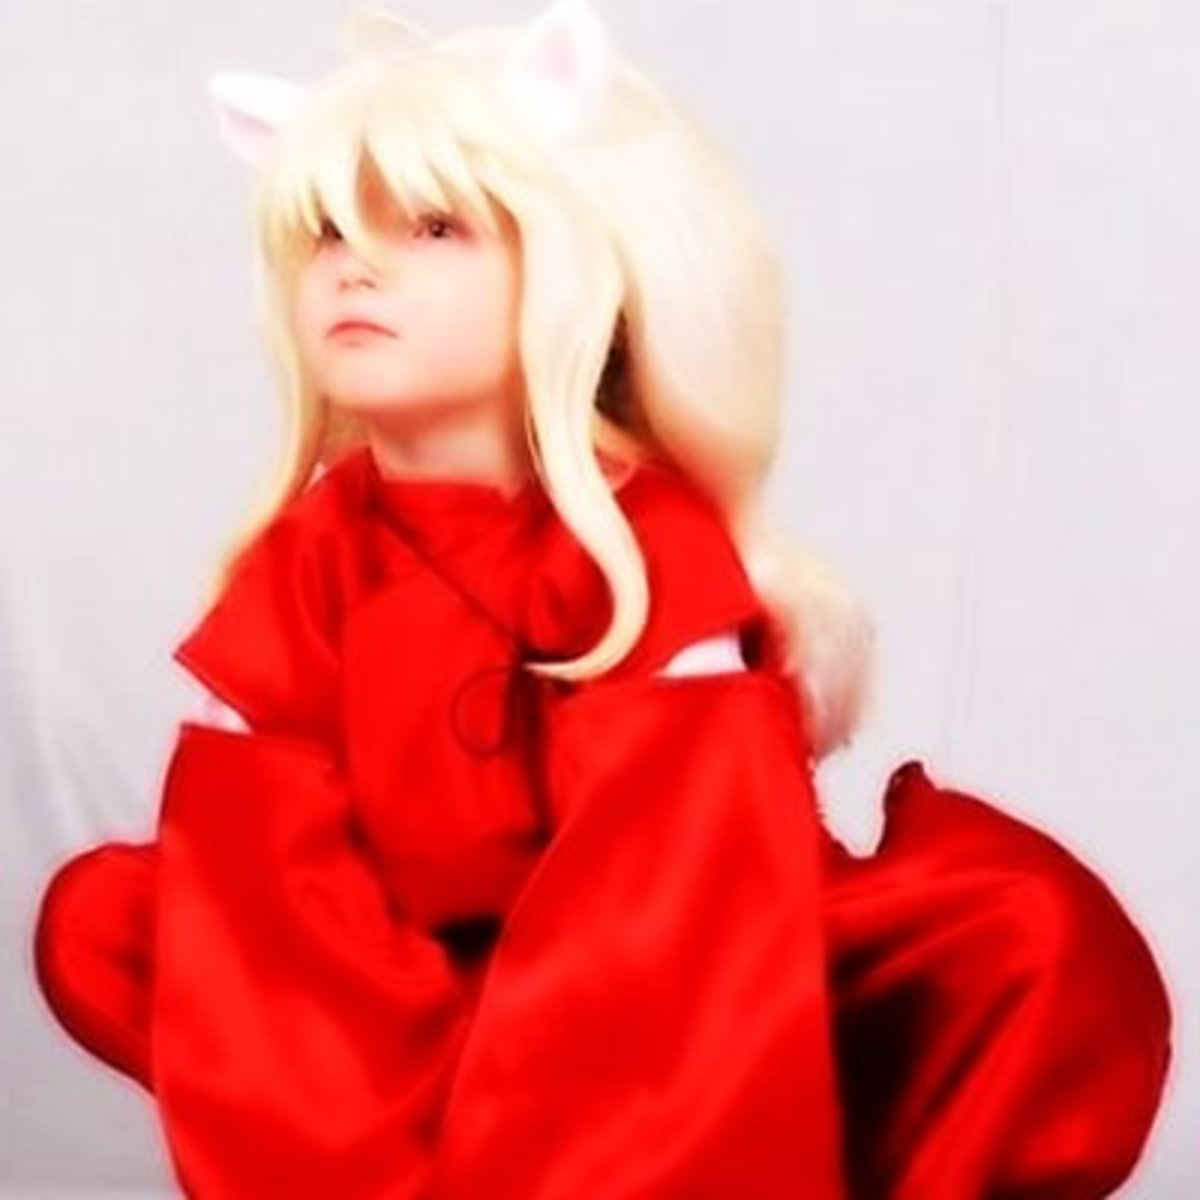 The main points of the Inuyasha costume are the ears, hair, and red clothing.